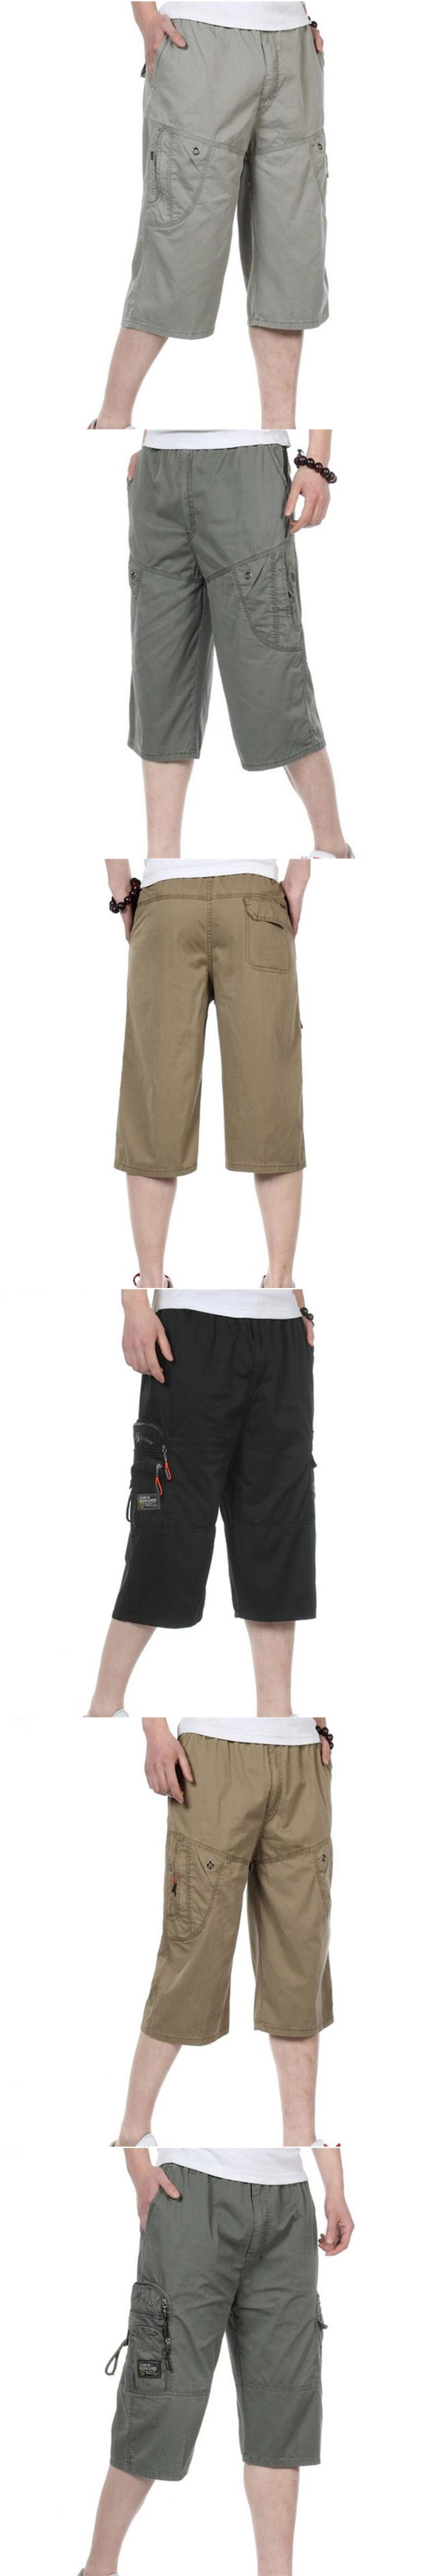 Summer Men's Multi Pocket Casual Short Pants Big Size Male European Style Loose European Style  Beach Short Pants For Men  A3726